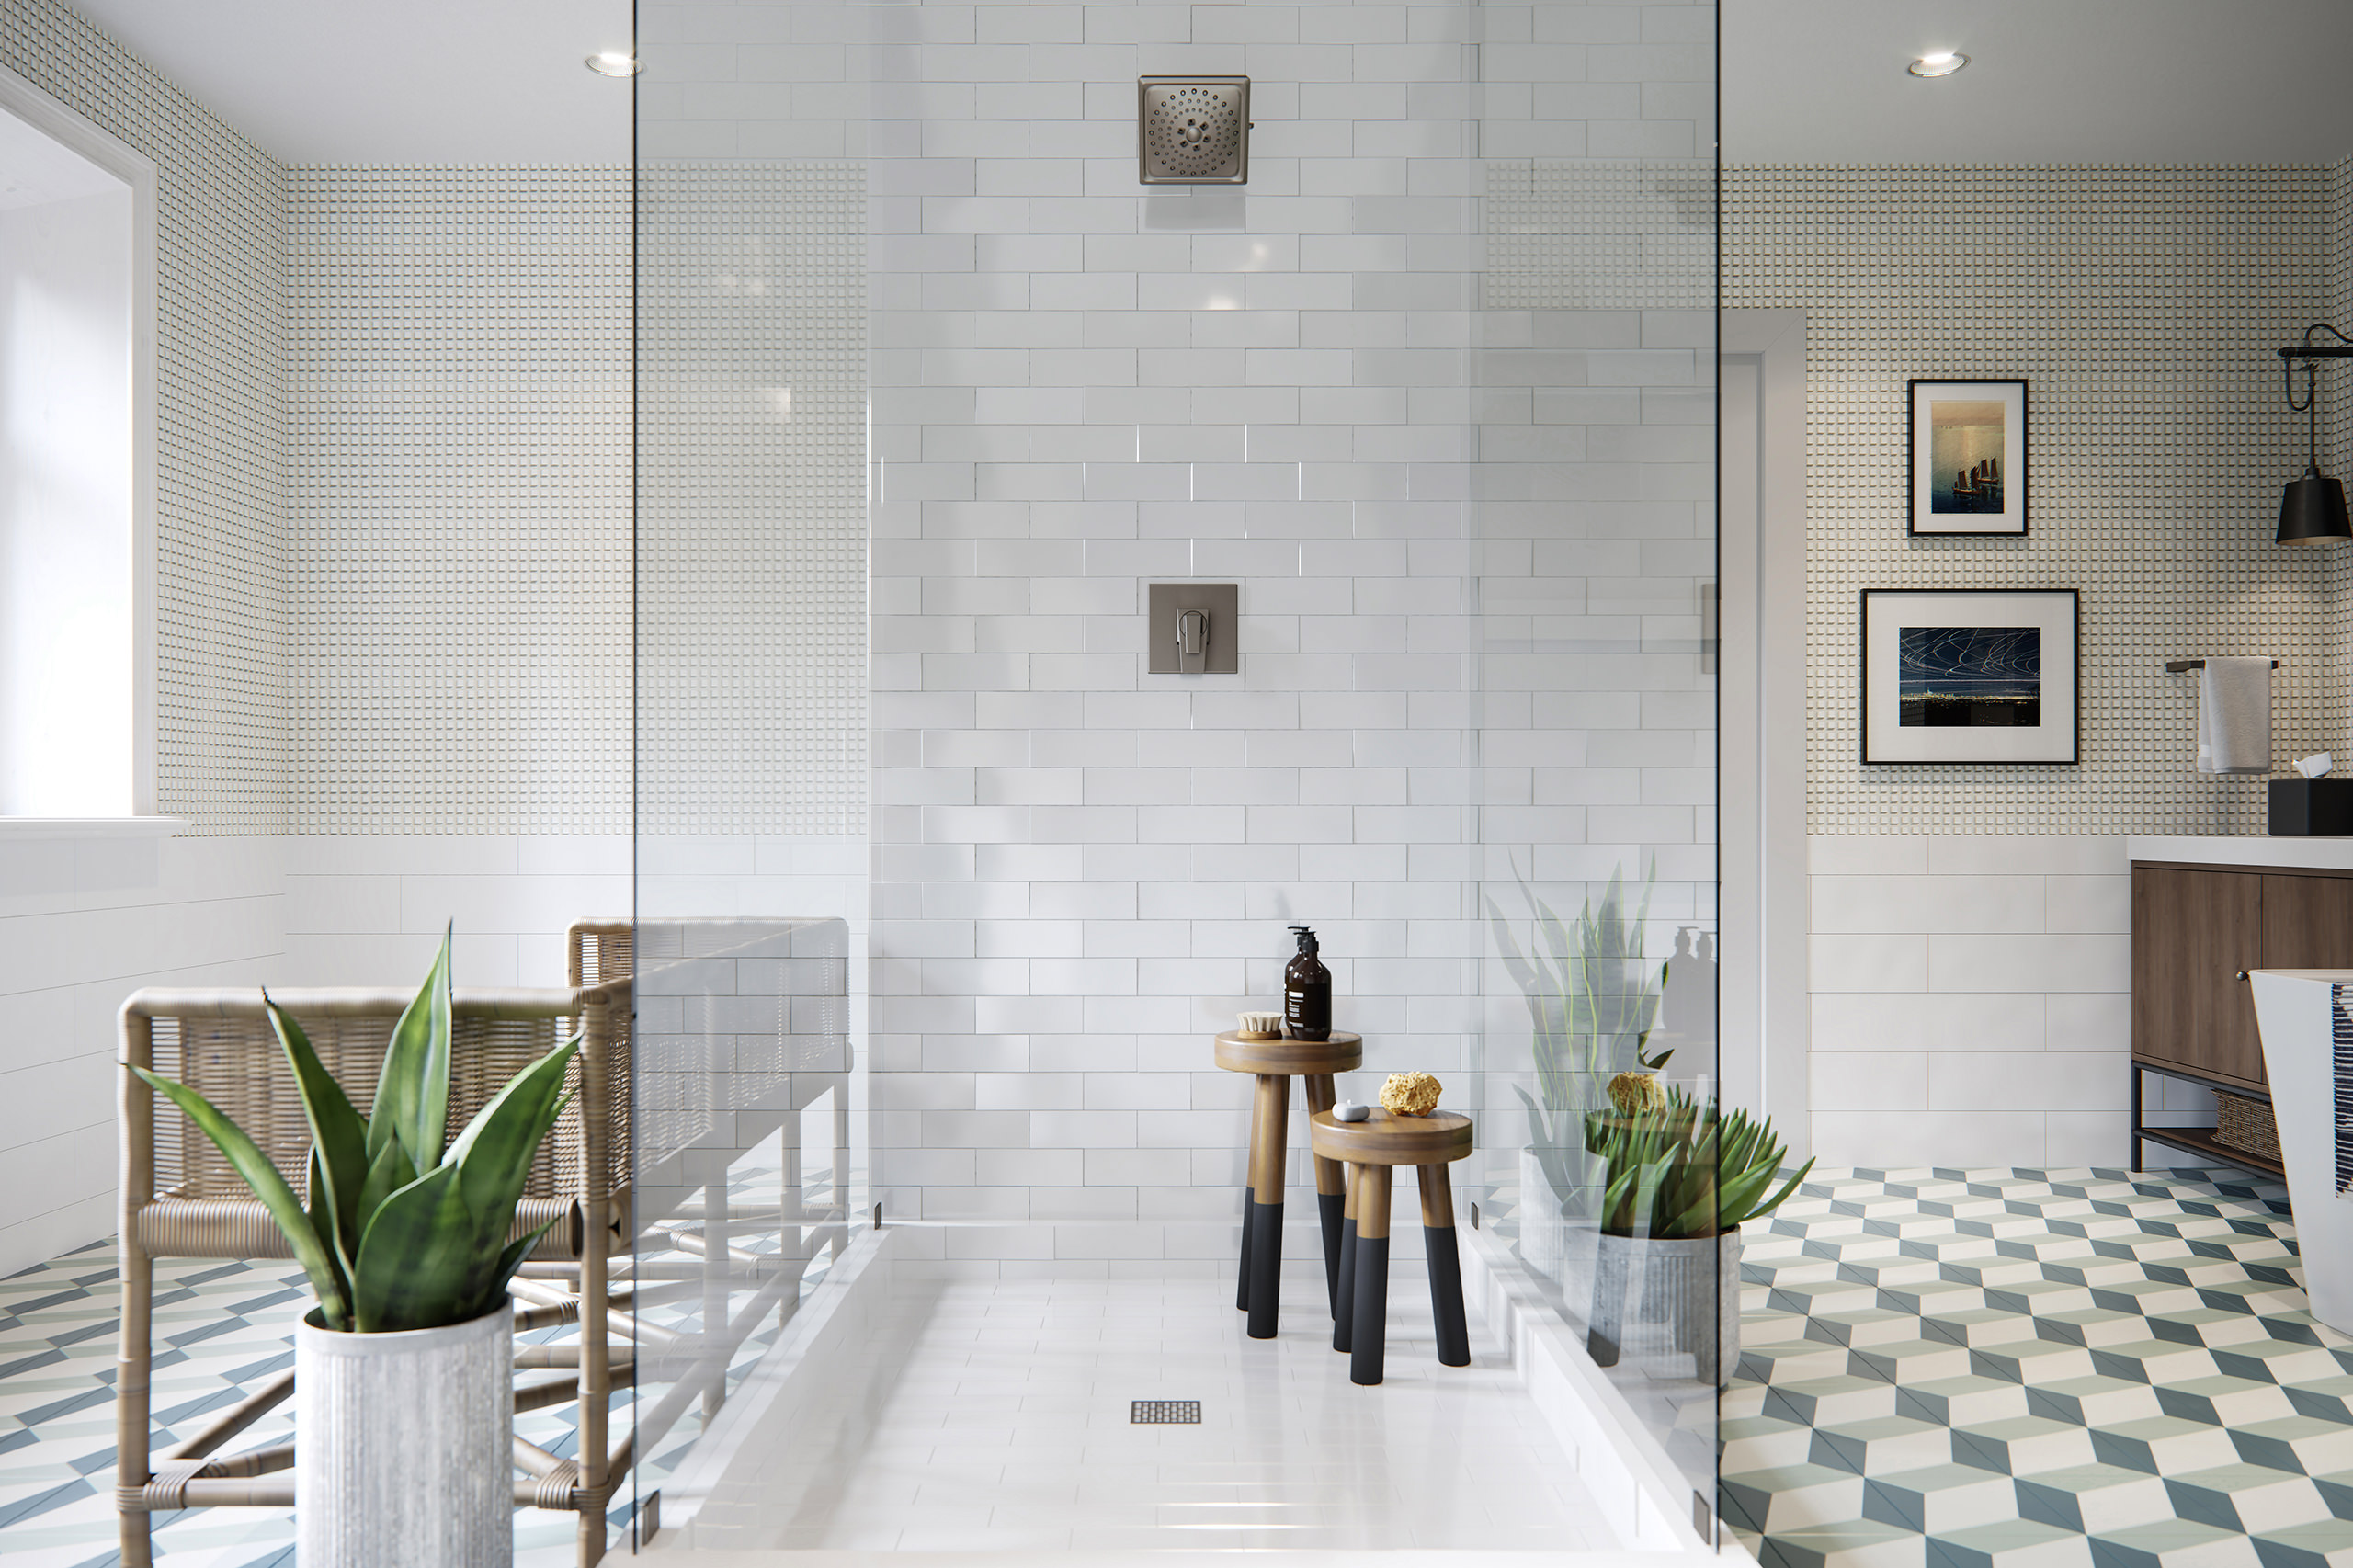 Front rendering of the shower interior with Trillian showerhead and controls and wooden furniture with plants